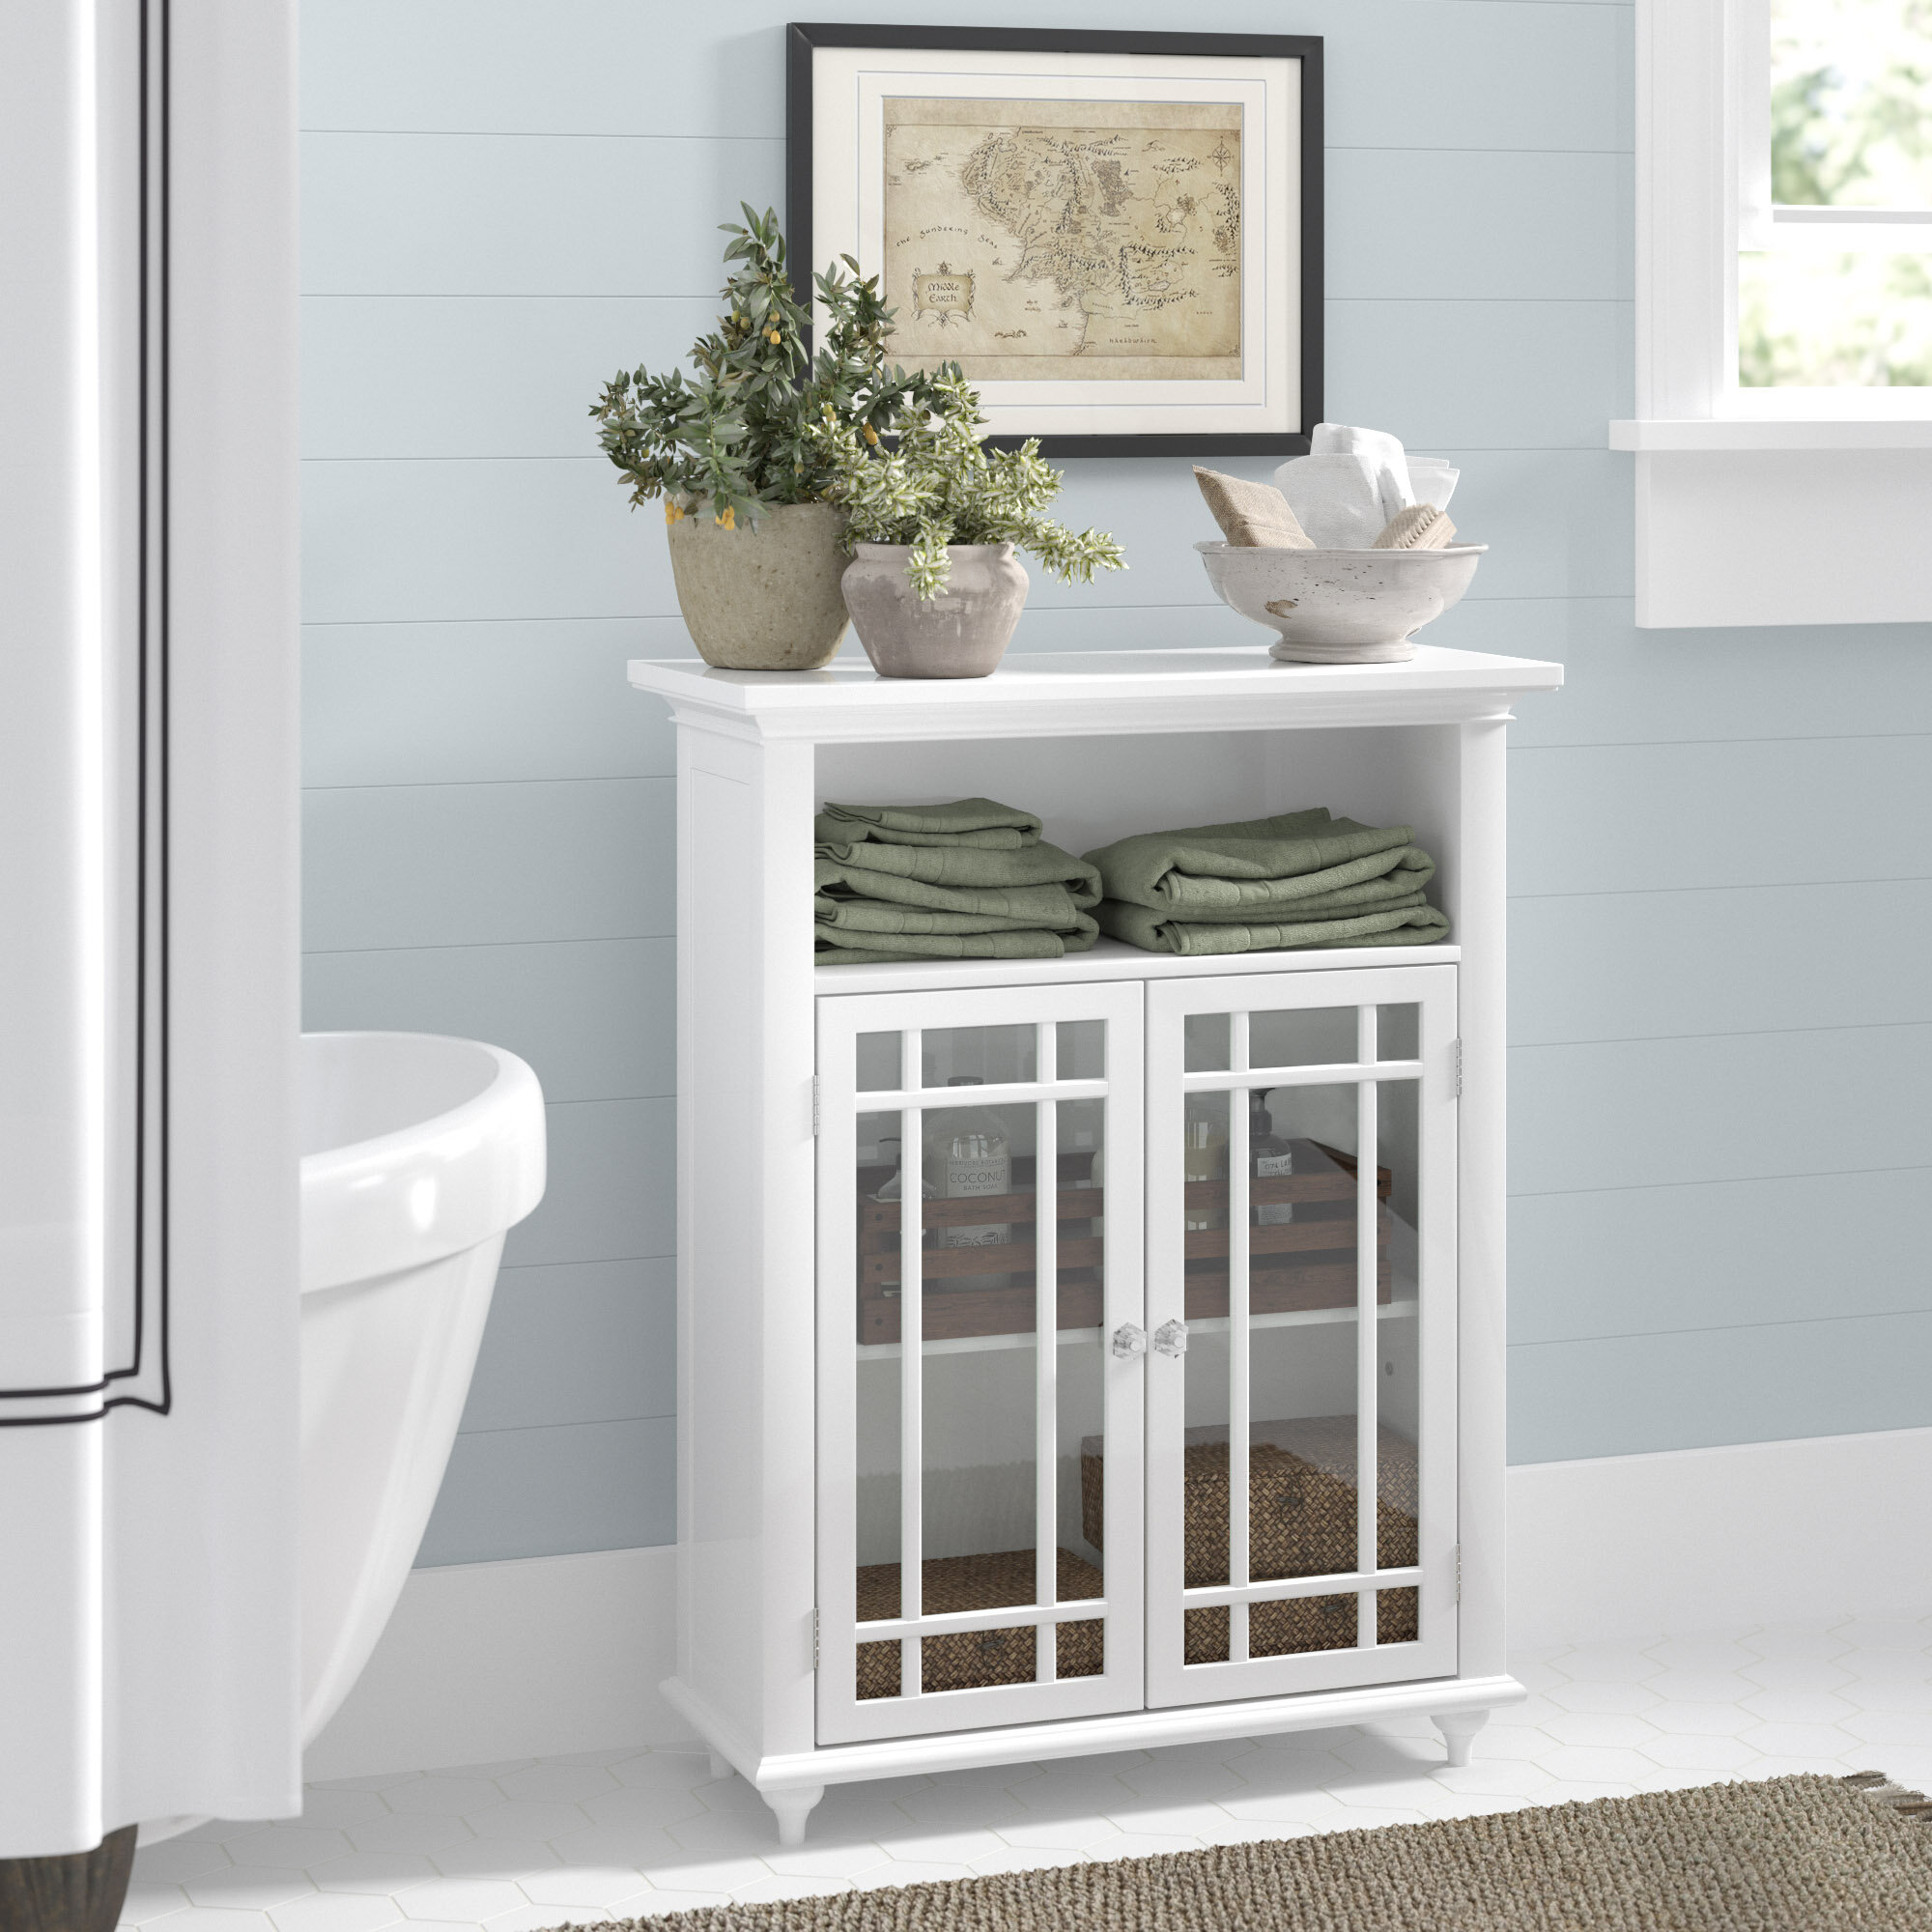 Carroll 26 5 W X 34 H X 12 5 D Free Standing Bathroom Cabinet Reviews Birch Lane